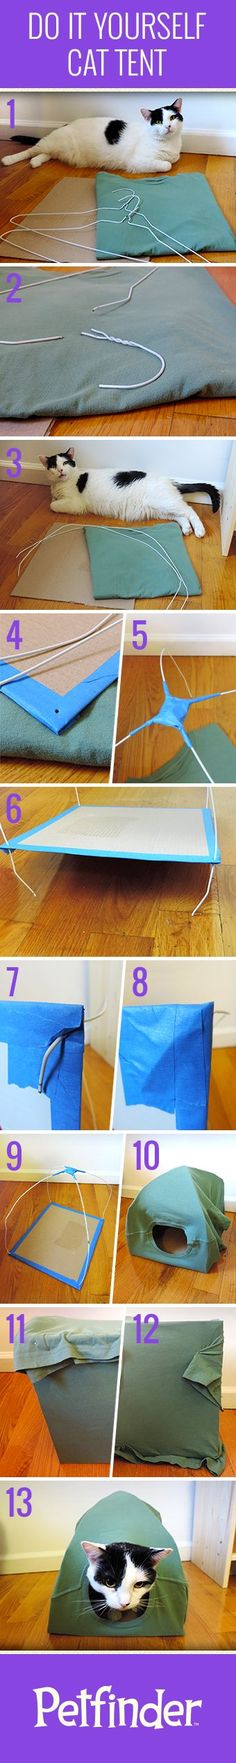 Make your cat a happy camper by putting together this easy DIY project. It just takes a couple of coat hangers, cardboard, tape and an old t-shirt to make this cat tent - perfect for sleep and play!